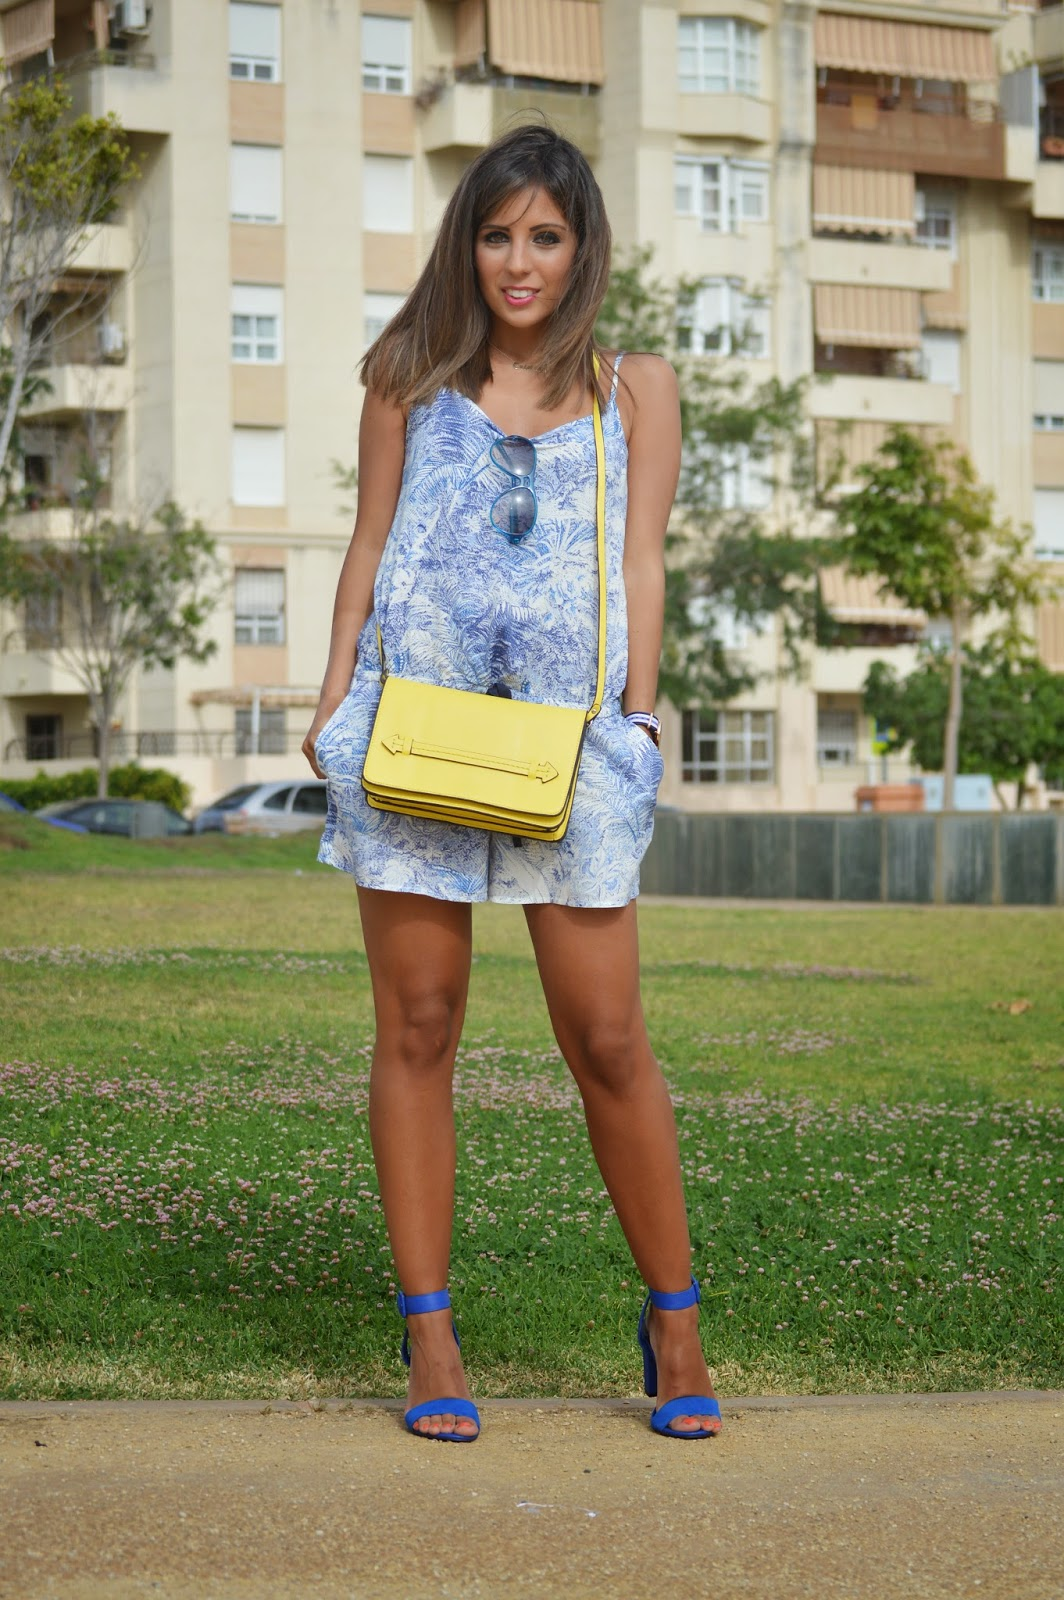 street style style fashion blogger malagueña blogger malagueña outfit look swag purse designer jumpsuit lovely girl inspiration summer tendencias moda mood gorgeous happy mango zara cristina style